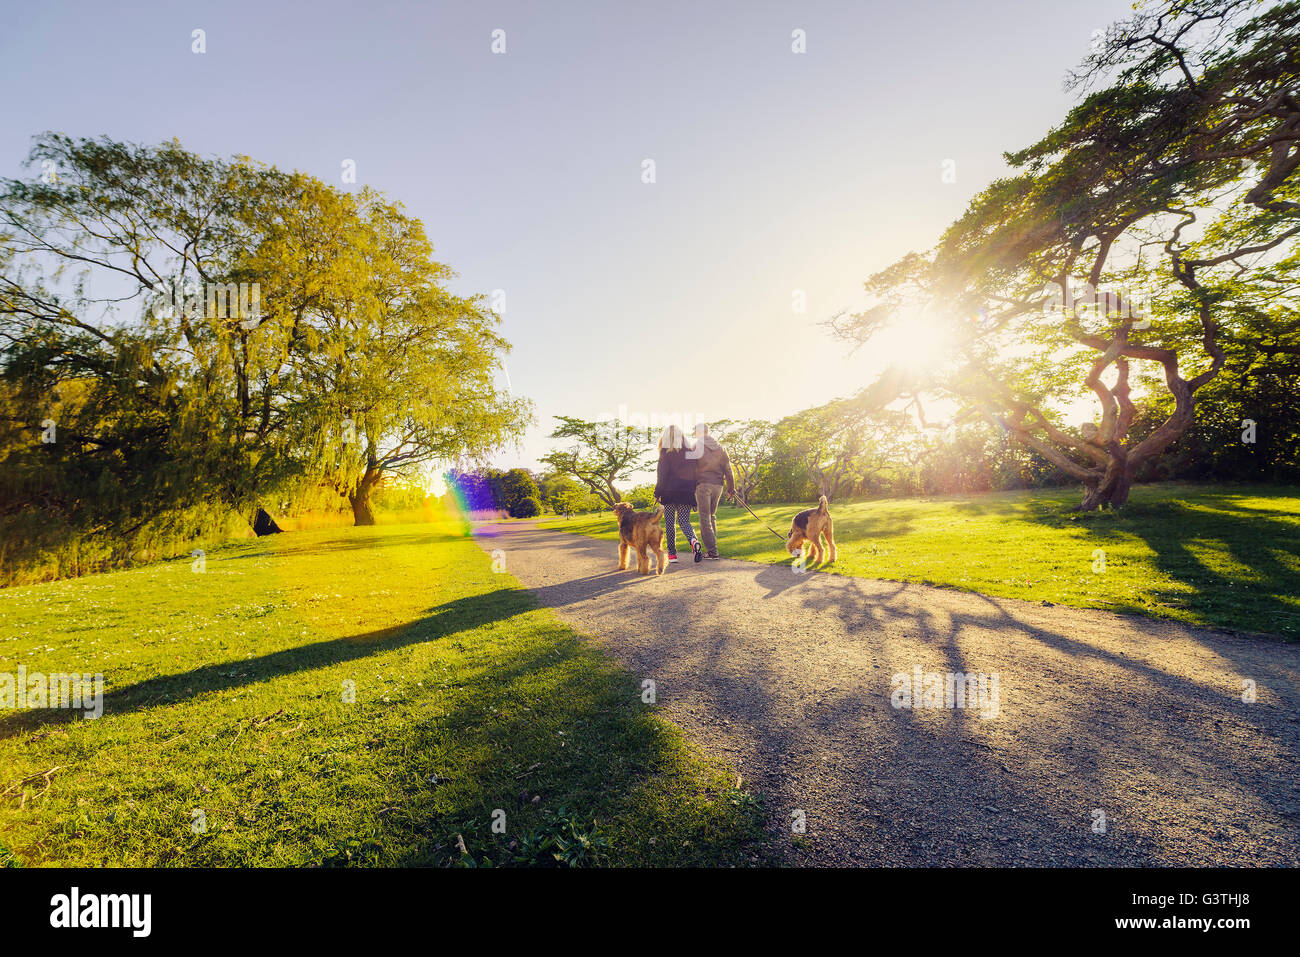 Sweden, Skane, Malmo, Malmo Folkets park, Mid-adult couple with dogs Stock Photo